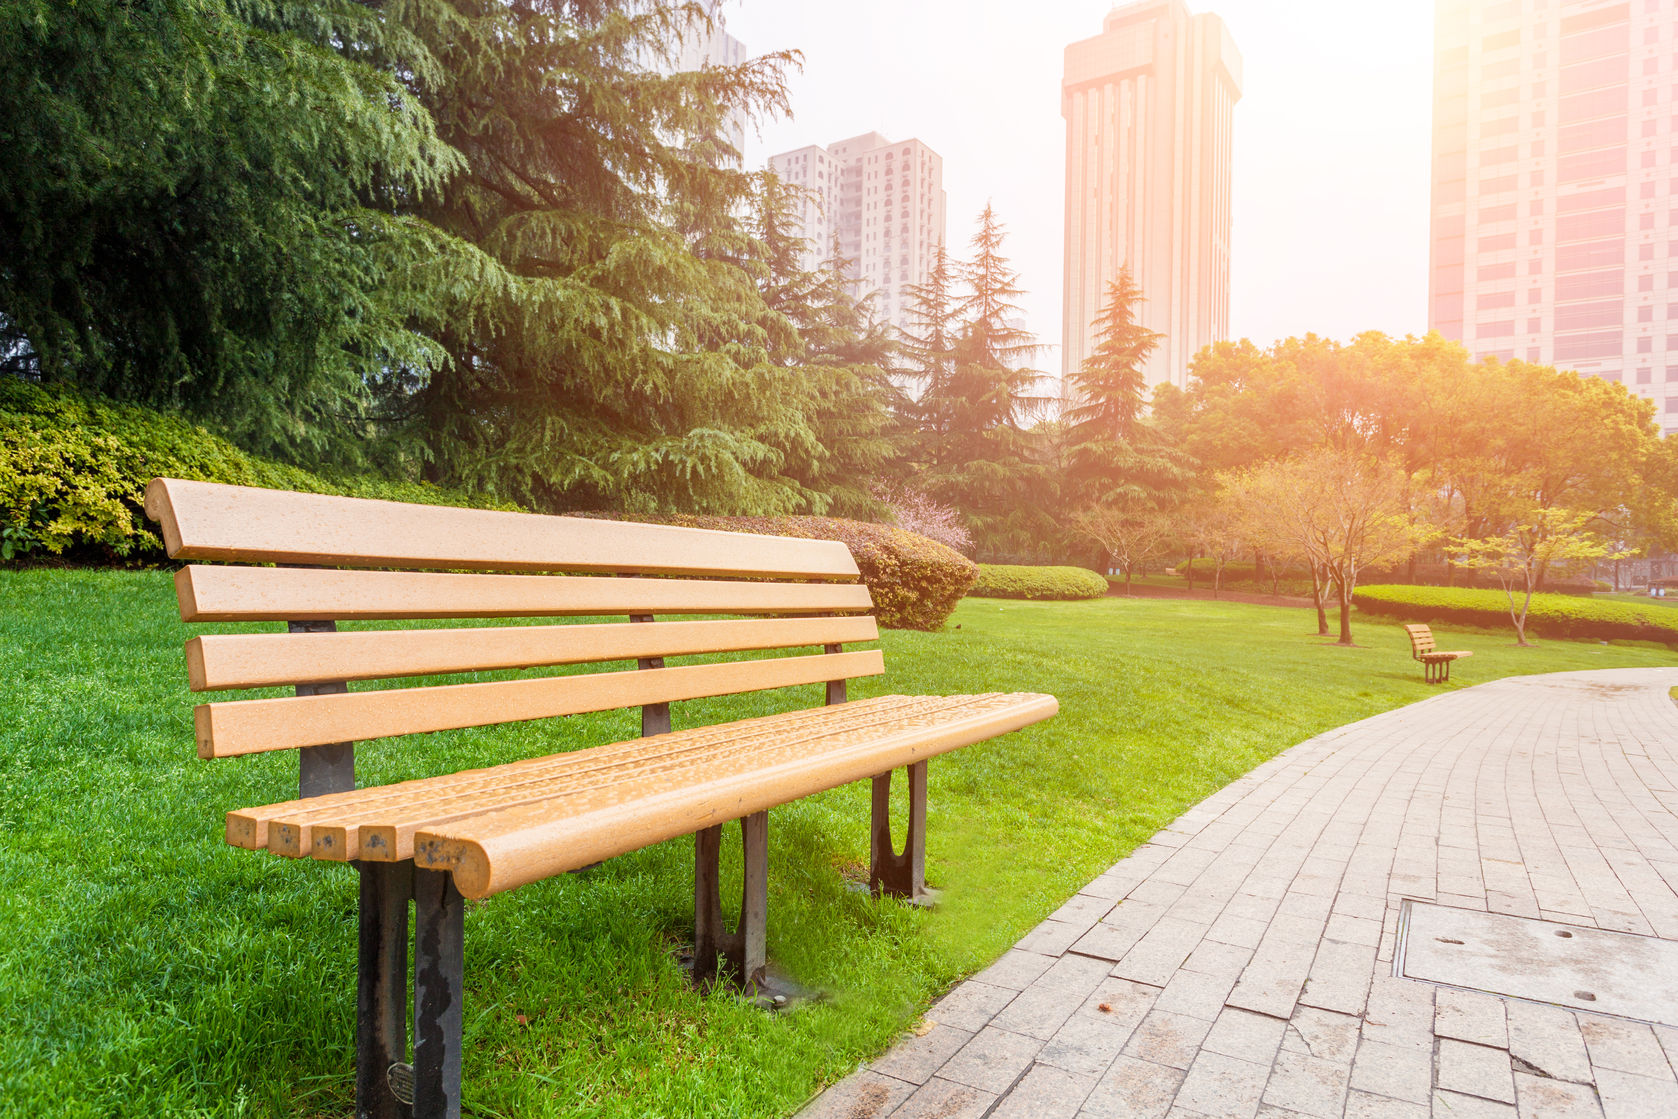 empty park bench in park